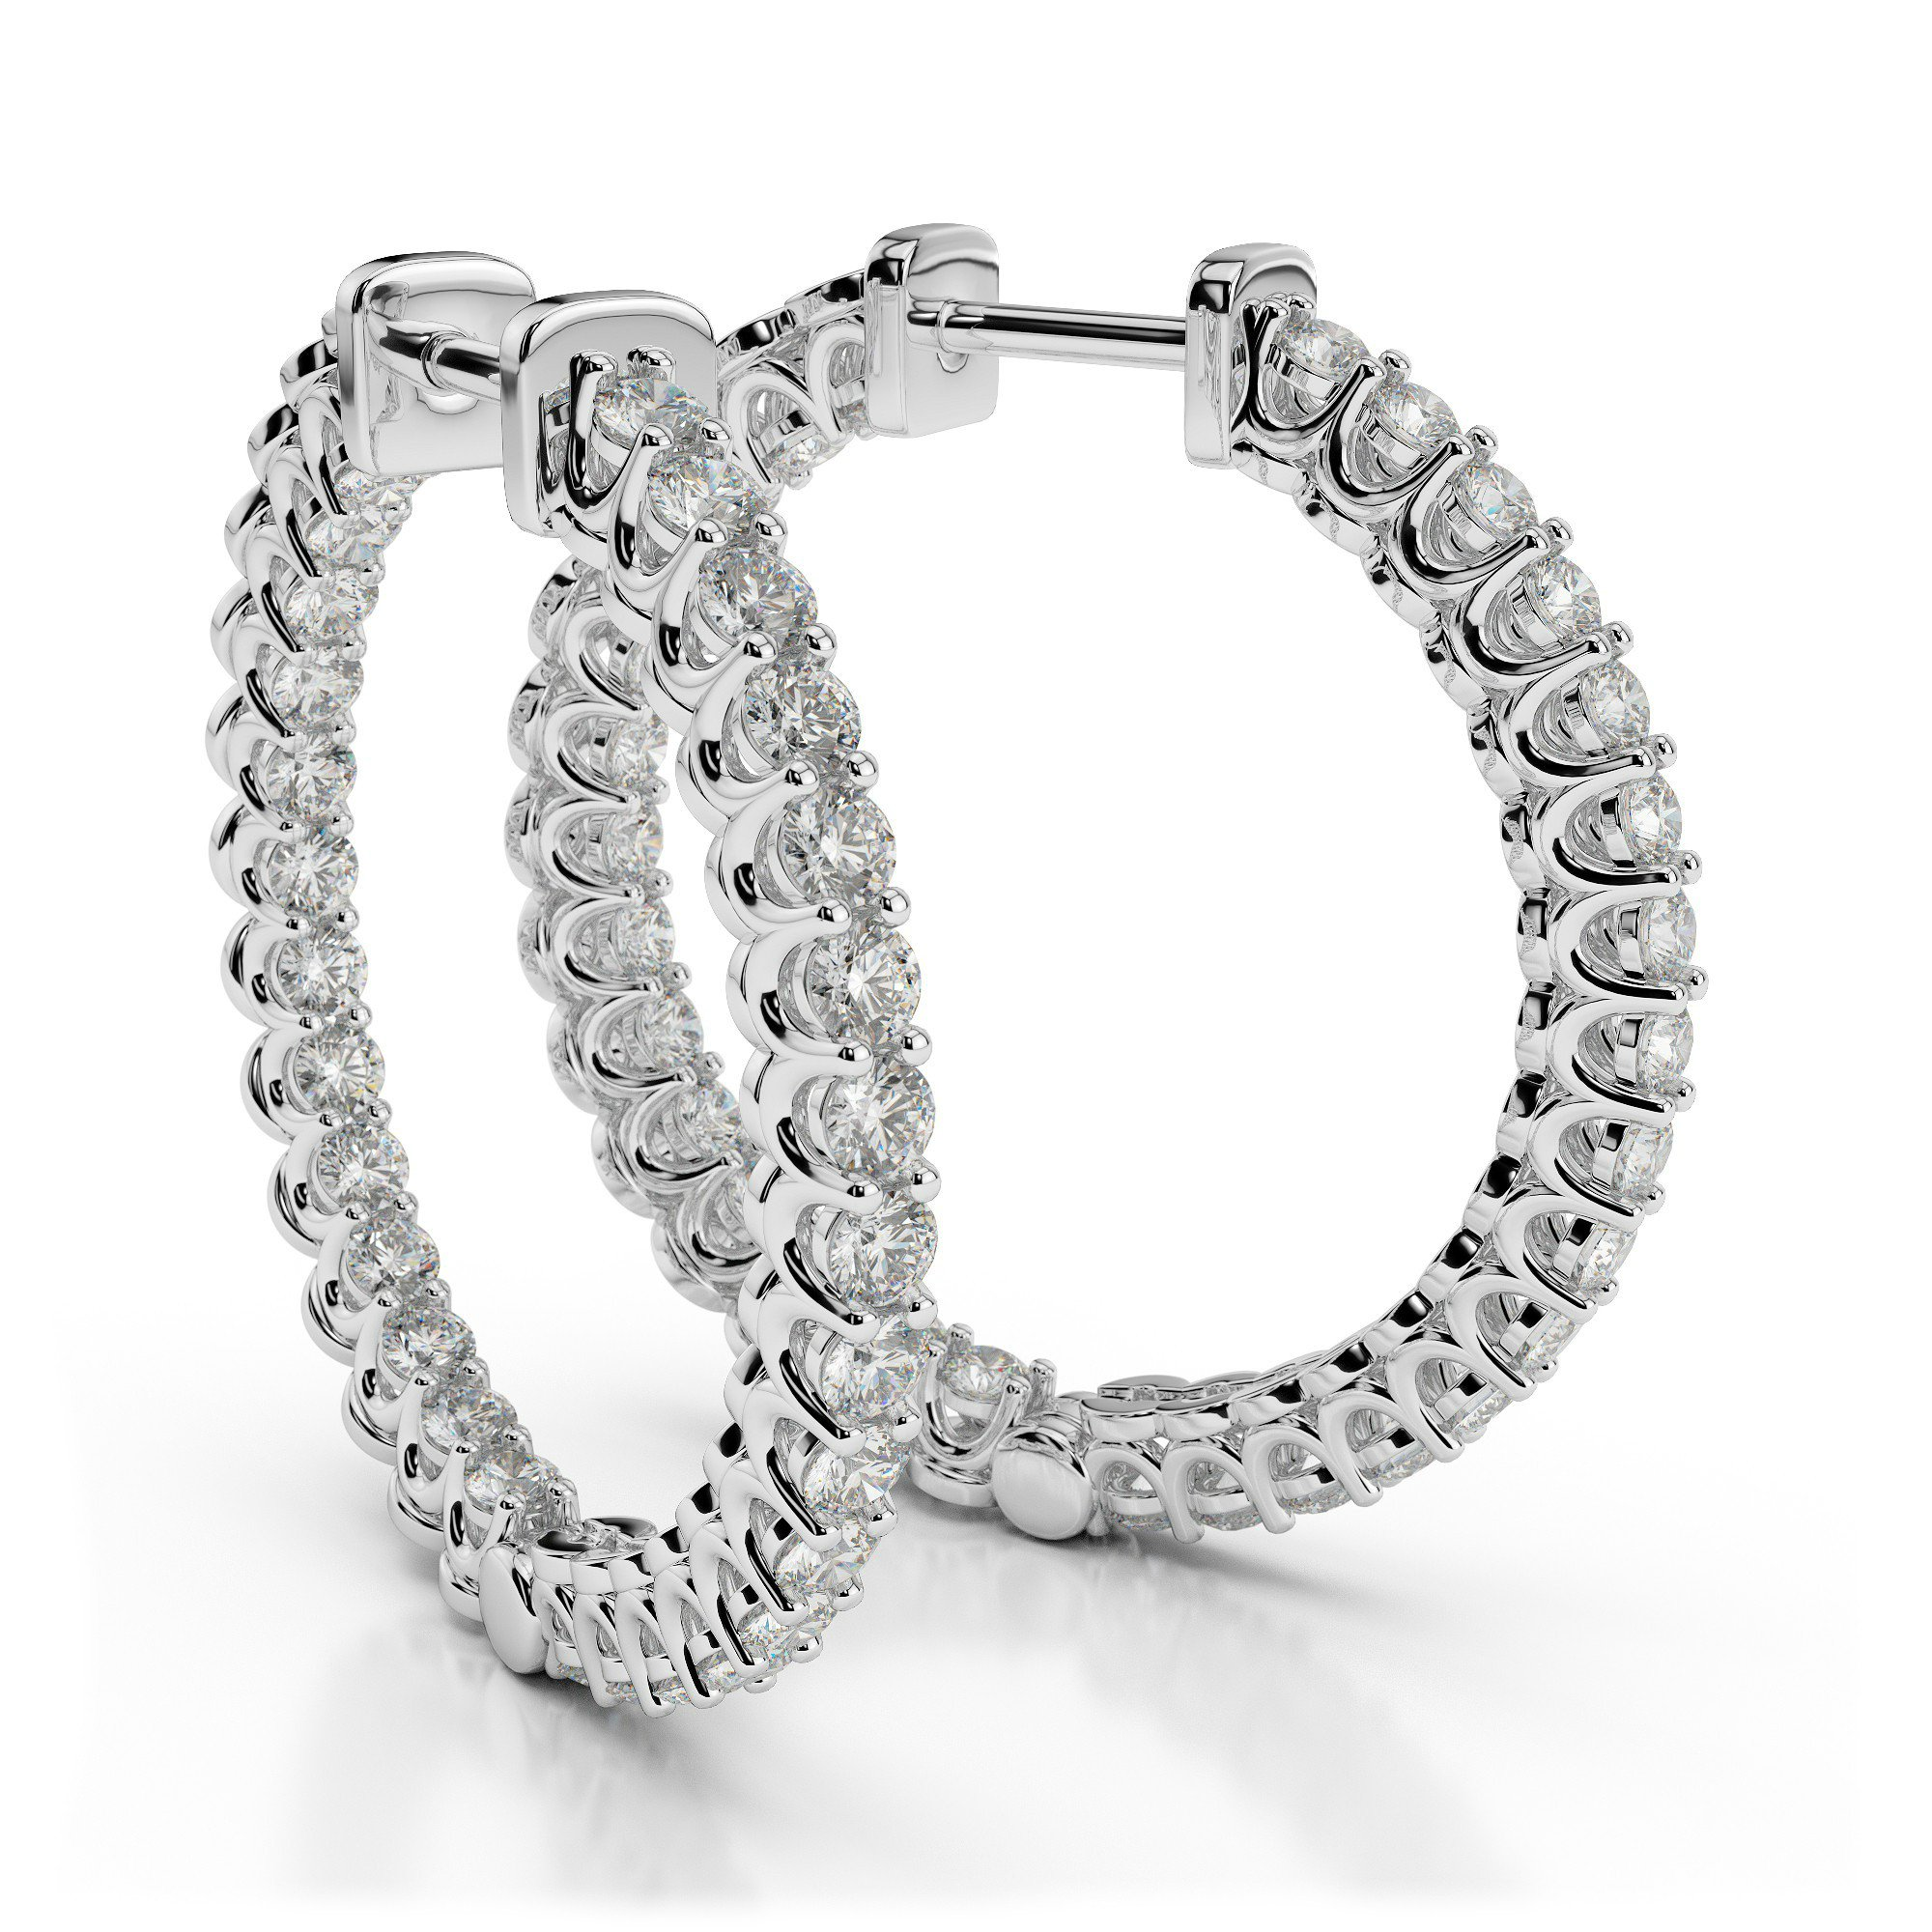 1.30 Carat Diamond Curved Prong Hoop Earrings